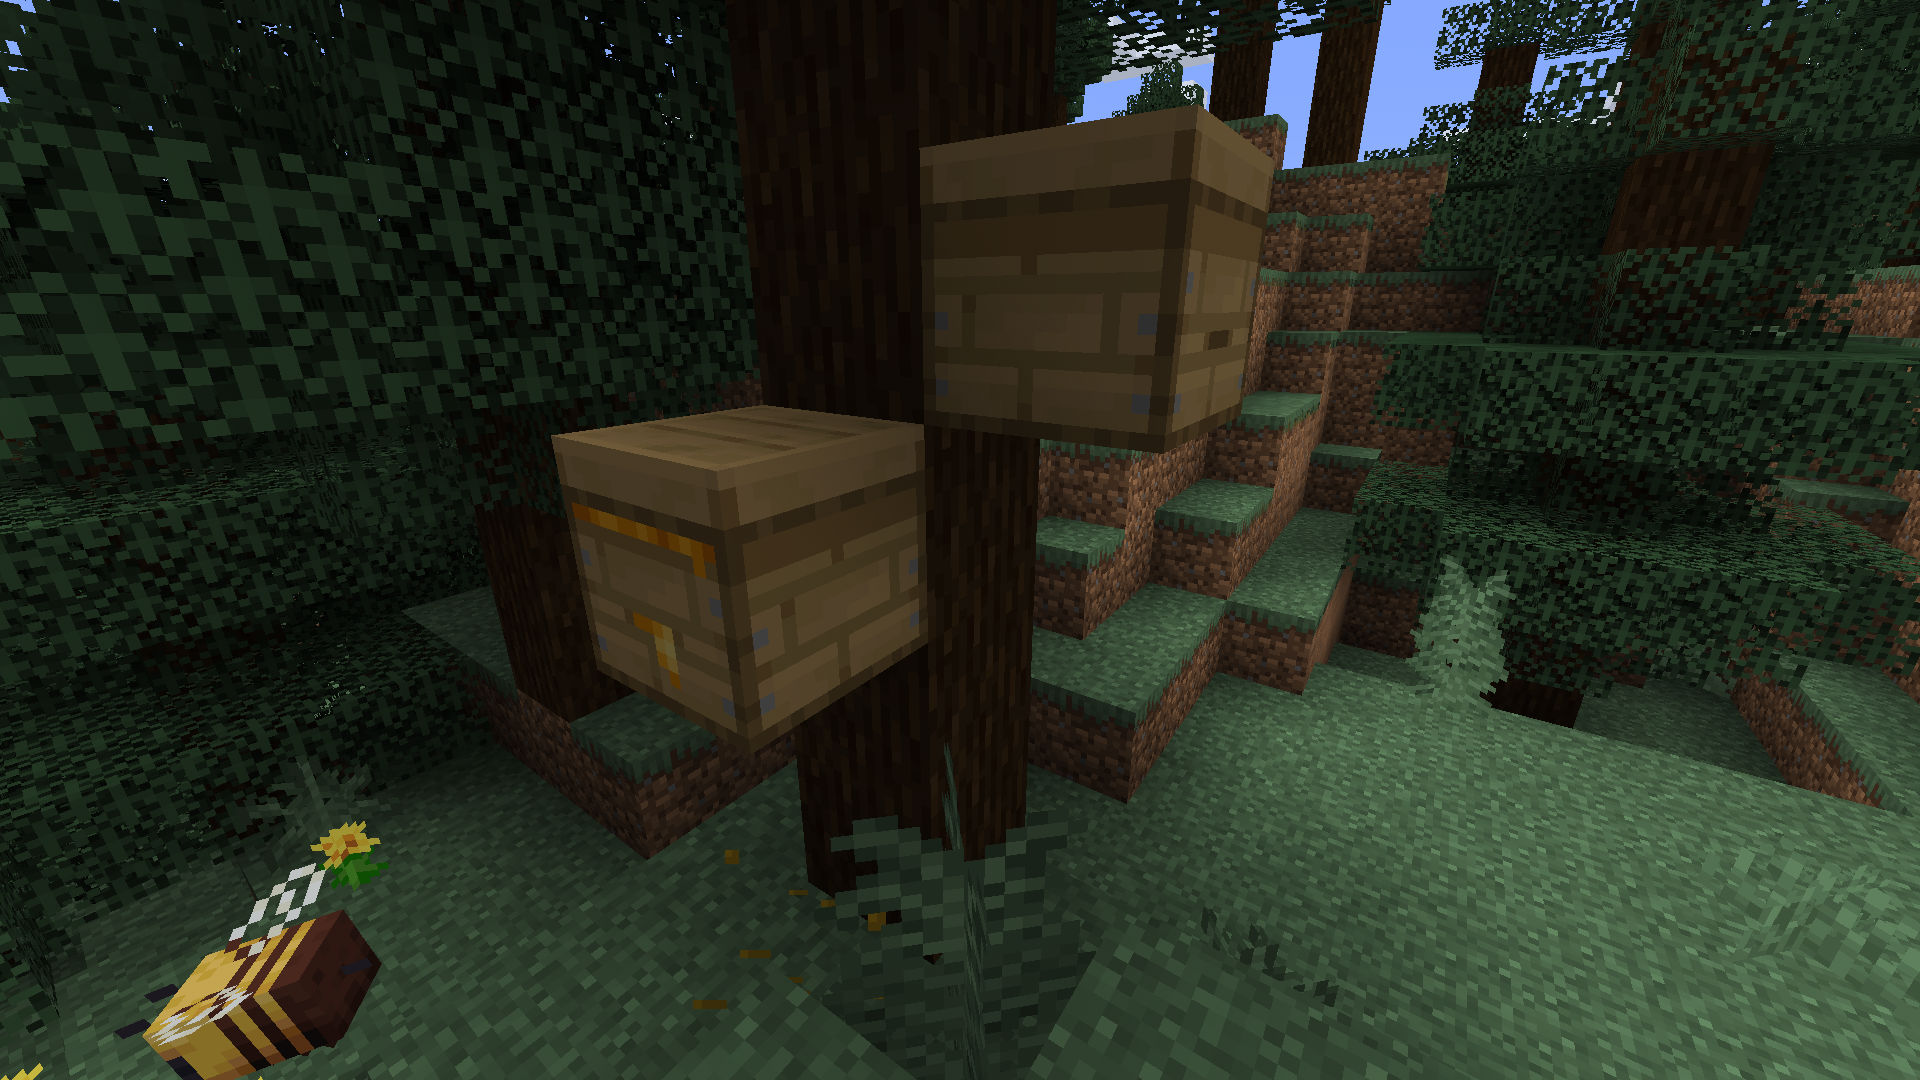 Minecraft bees: how to tame bees in Minecraft and more | PC Gamer